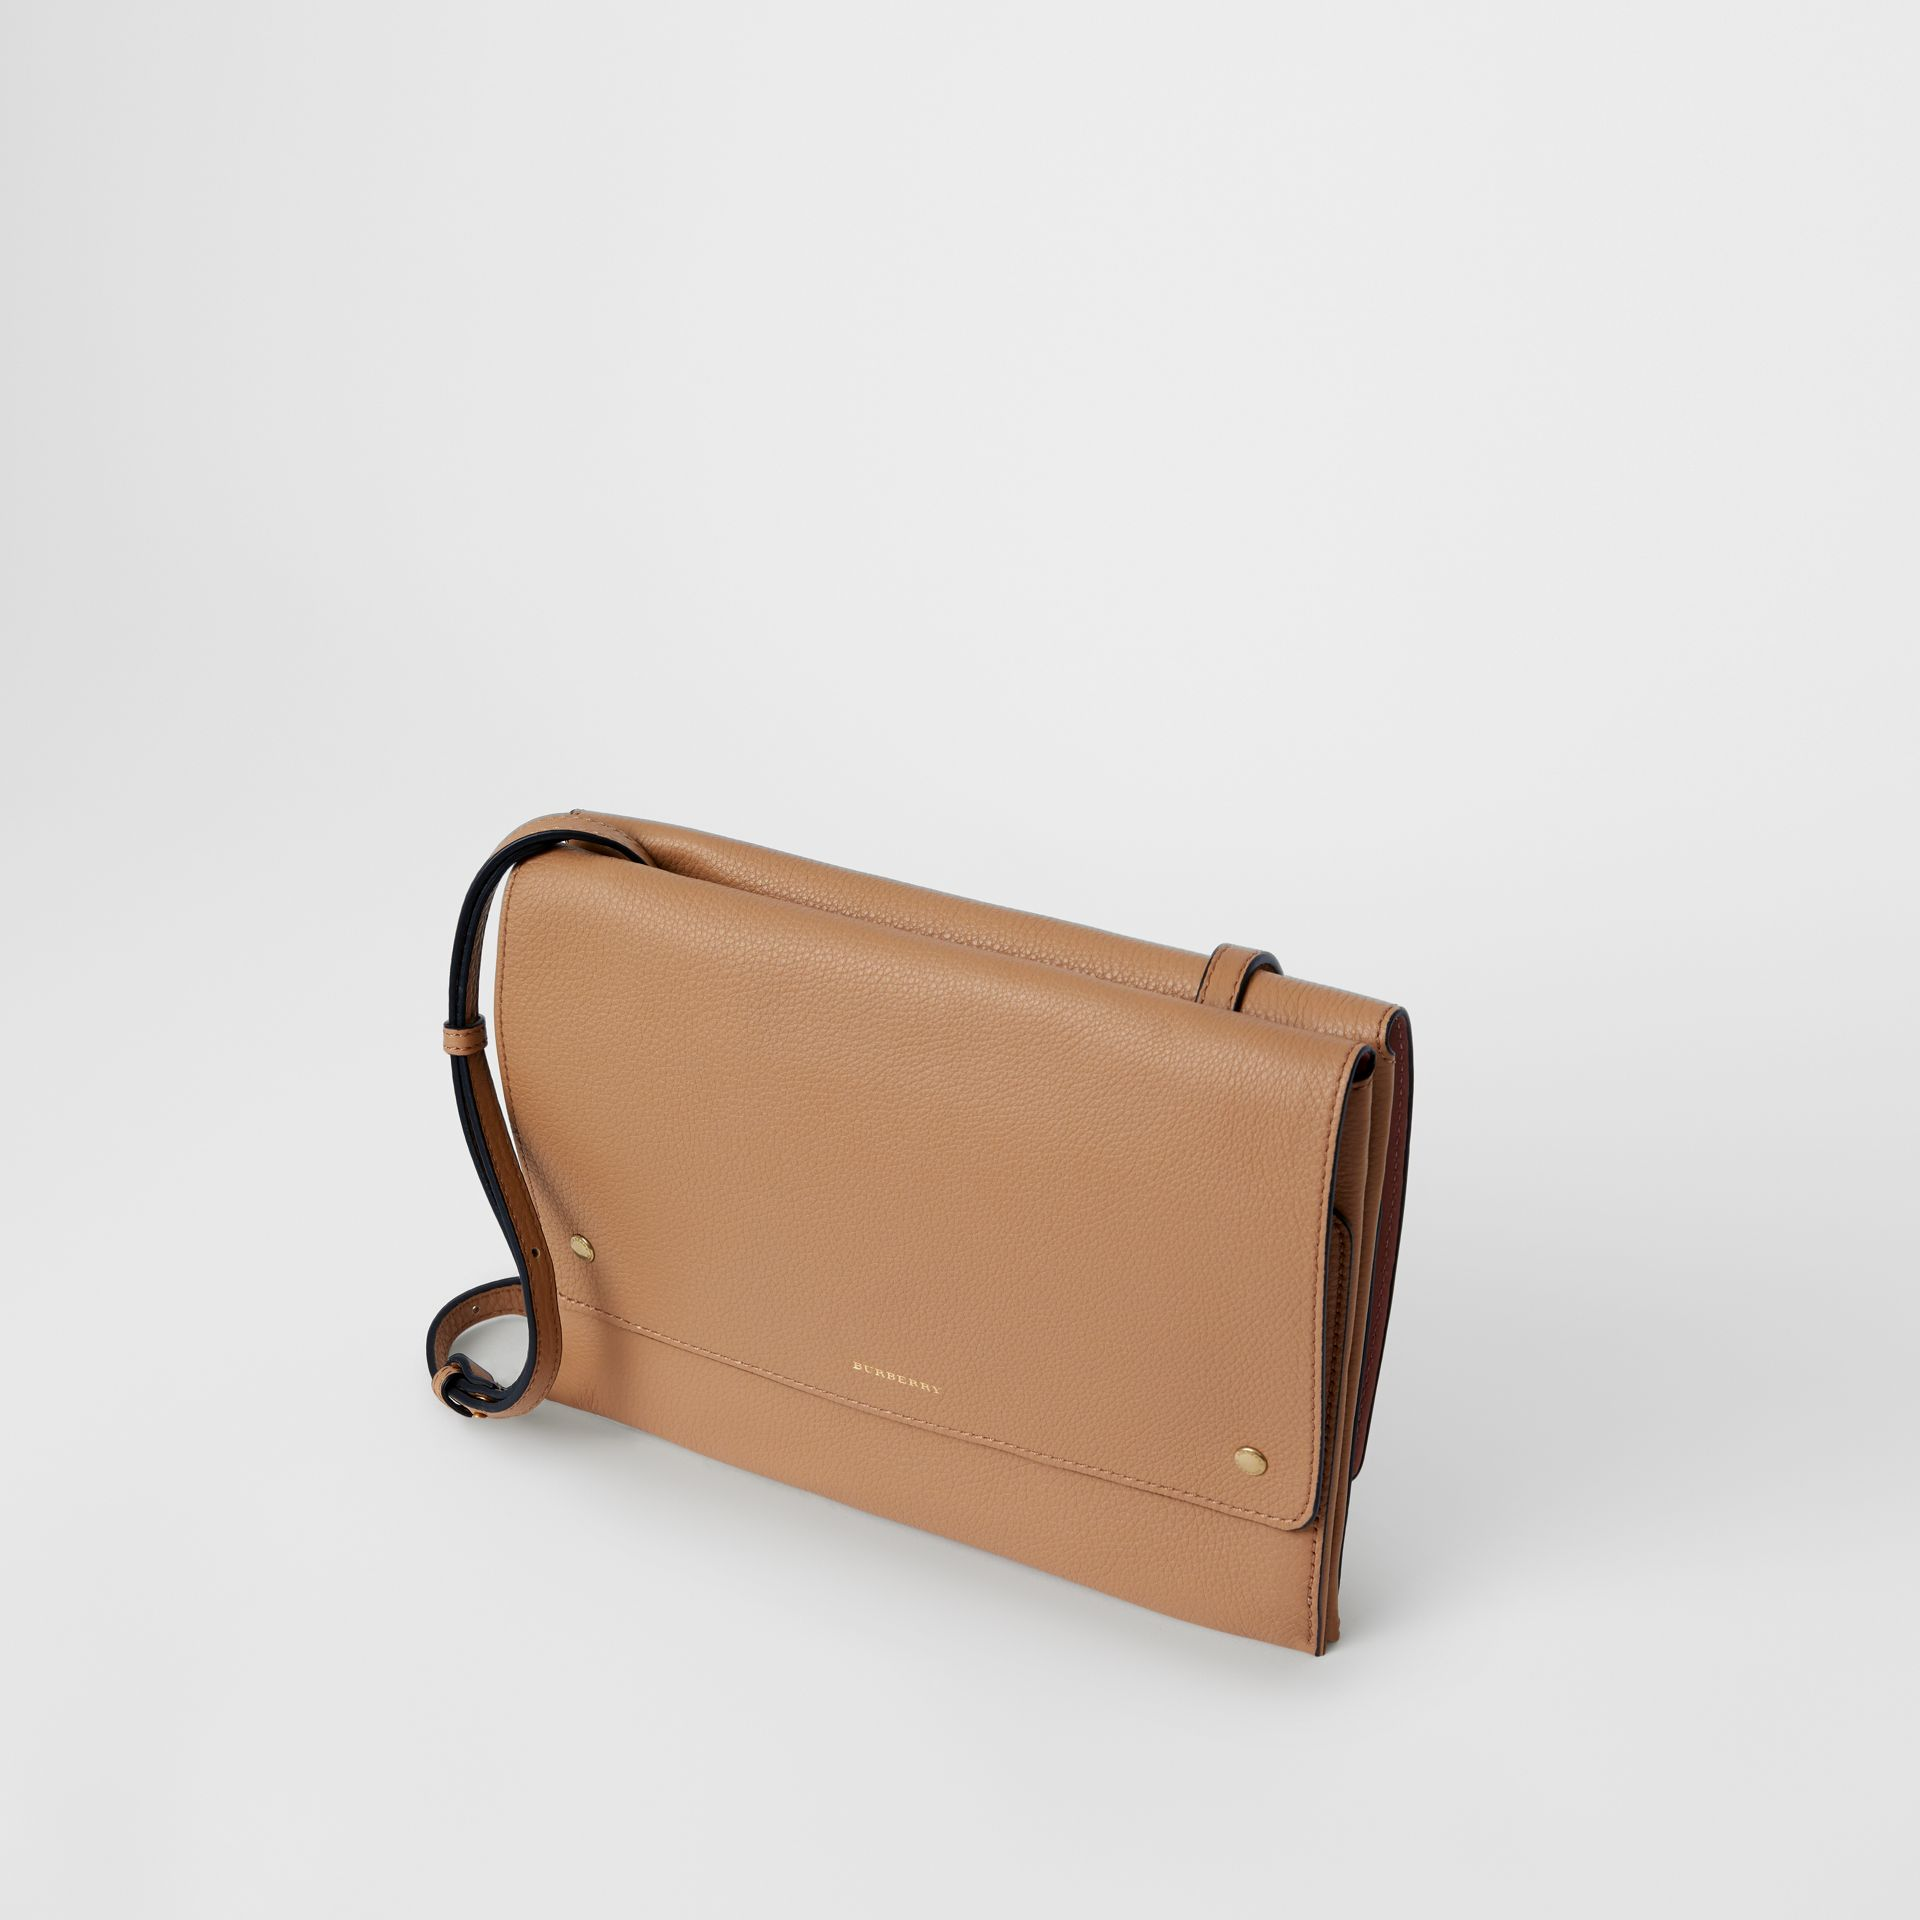 Leather Envelope Crossbody Bag in Light Camel - Women | Burberry - gallery image 4